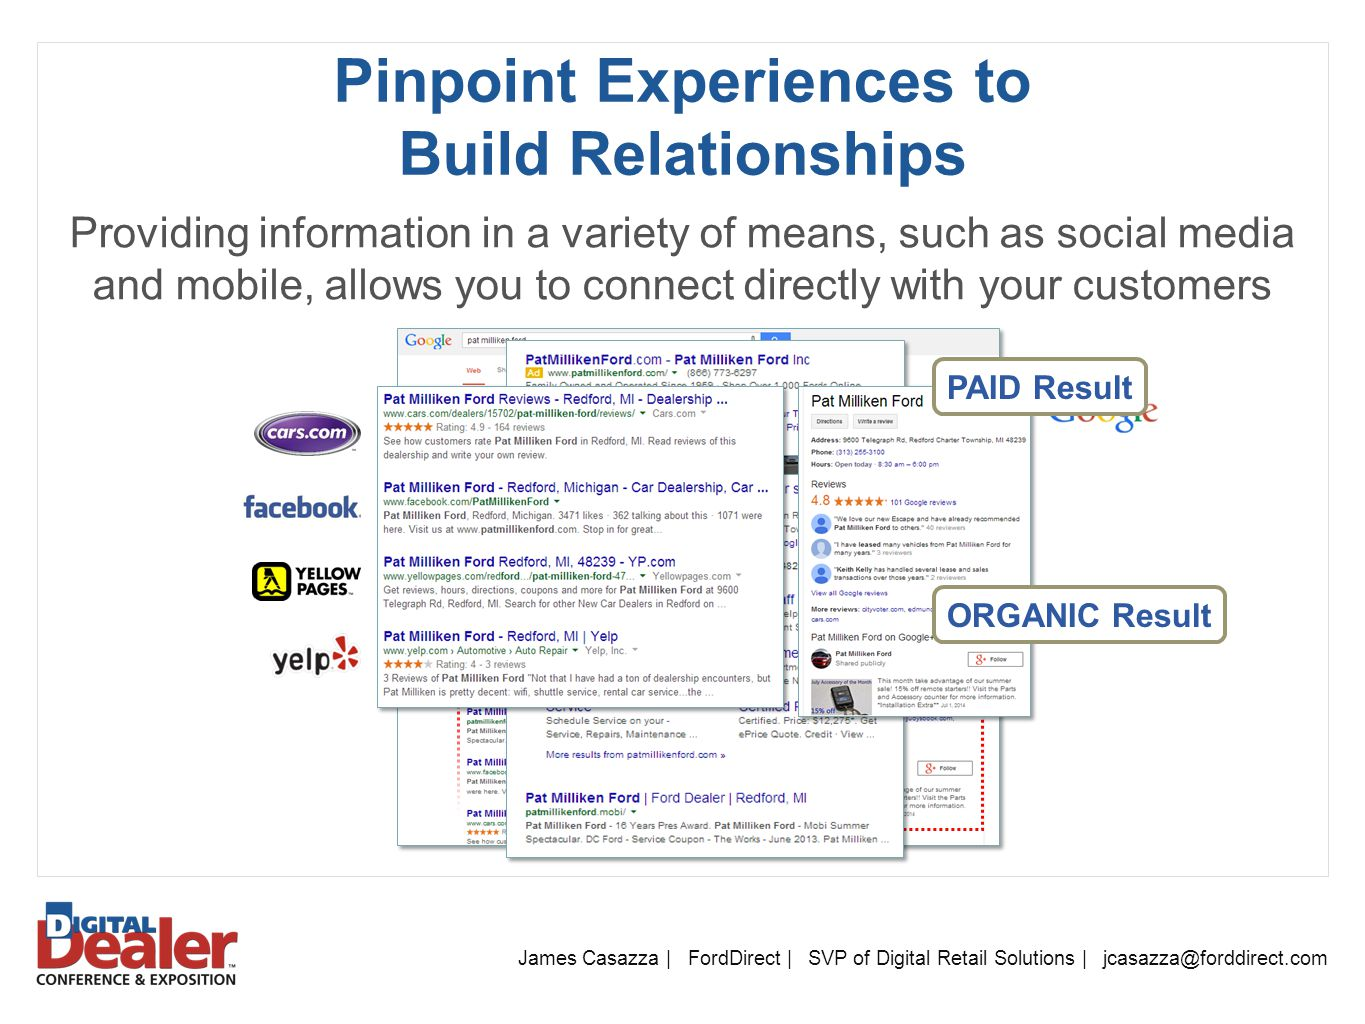 James Casazza | FordDirect | SVP of Digital Retail Solutions | jcasazza@forddirect.com Pinpoint Experiences to Build Relationships Providing information in a variety of means, such as social media and mobile, allows you to connect directly with your customers PAID Result ORGANIC Result